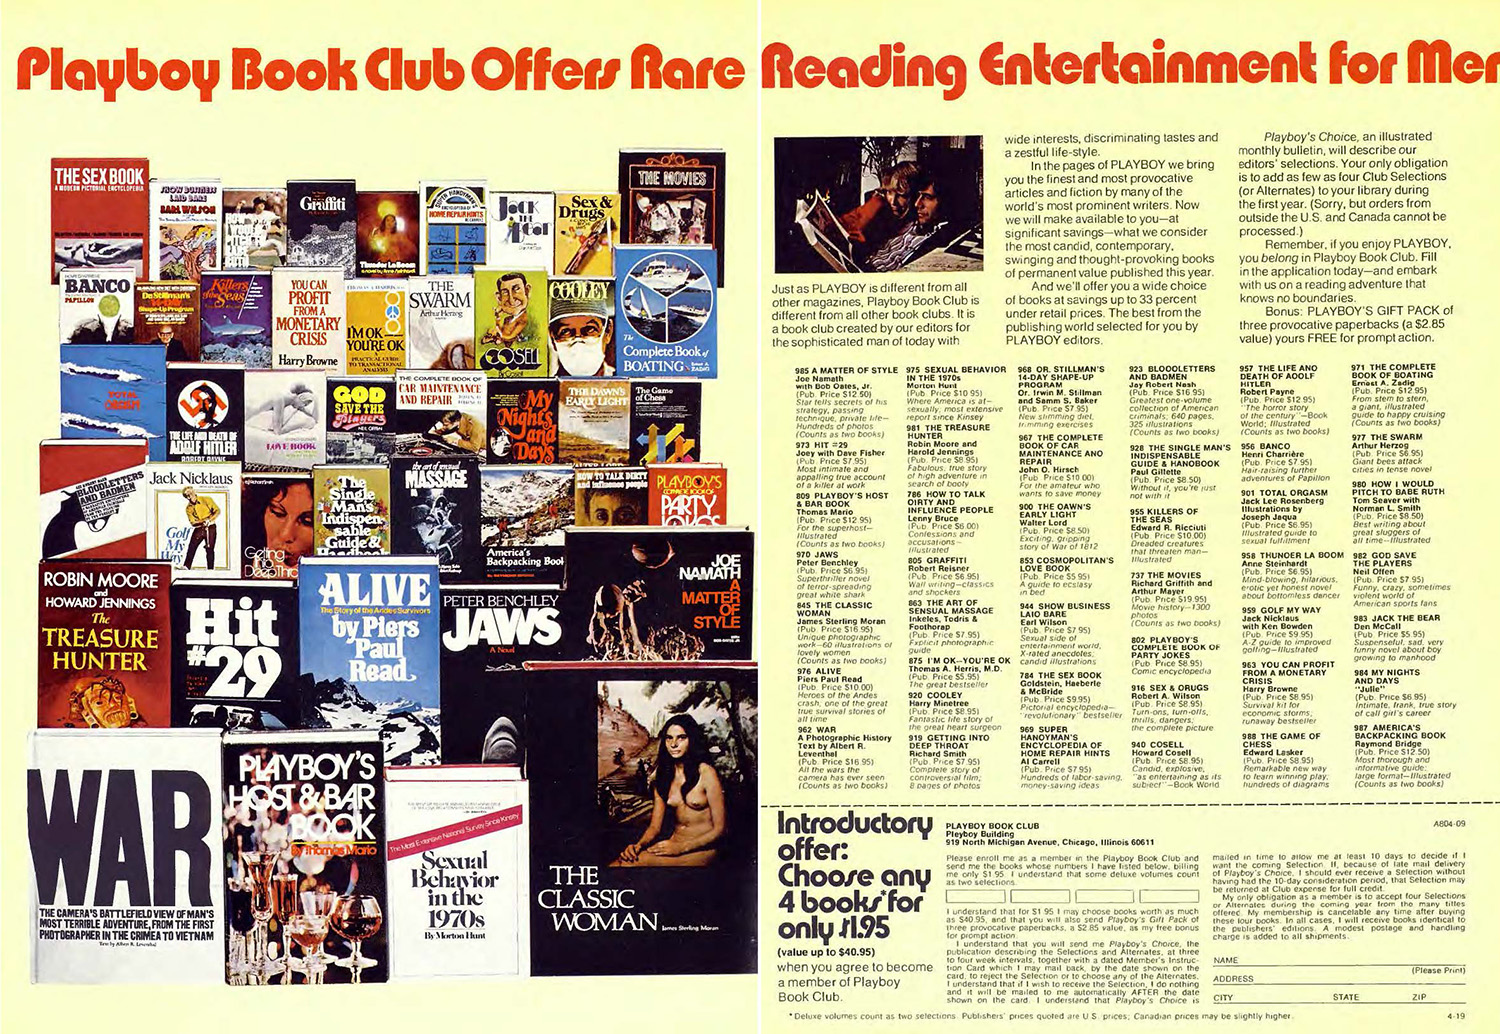 1974 playboy book club